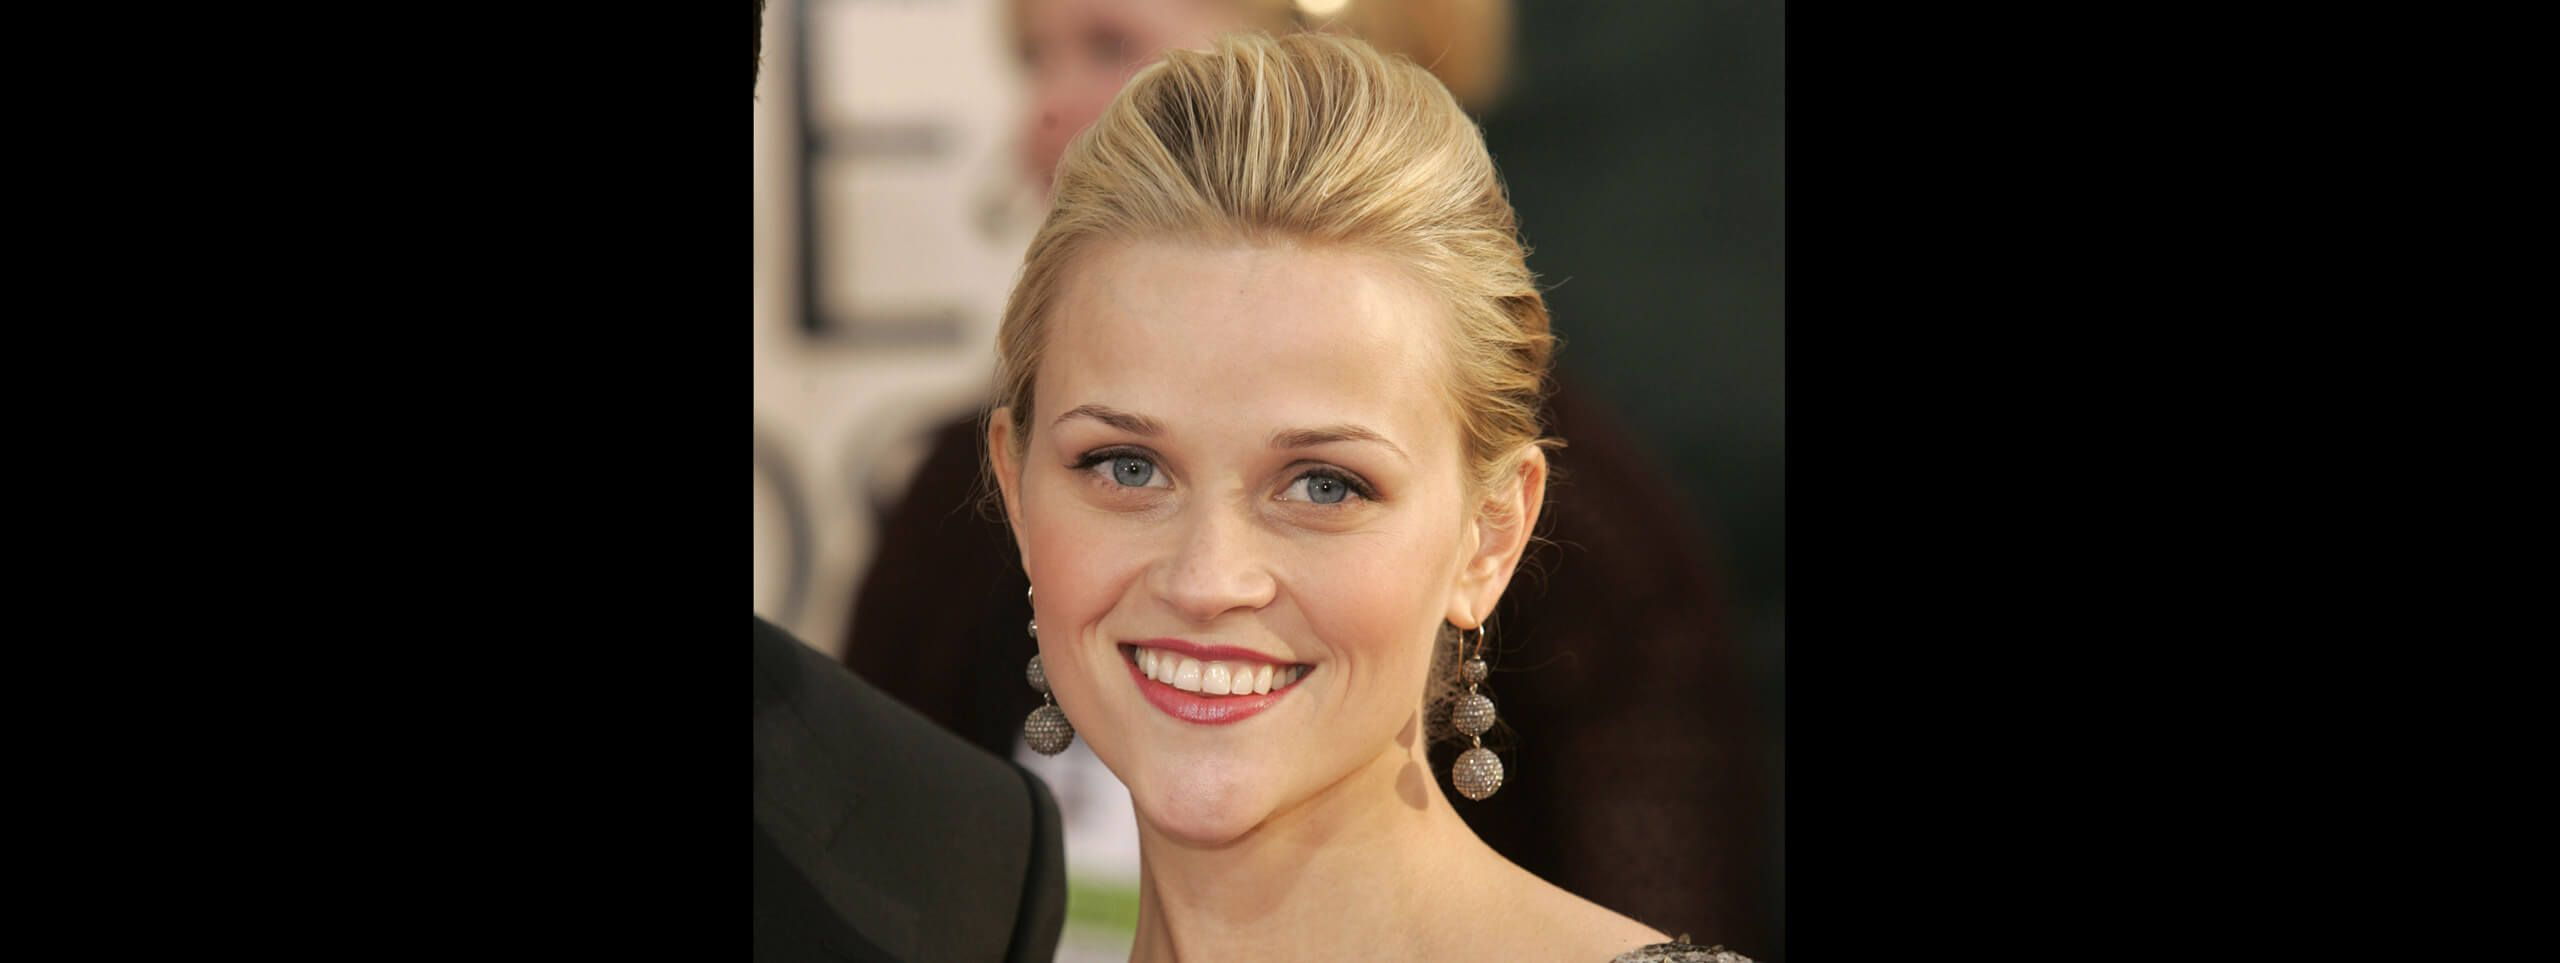 Resse Witherspoon chignon sixties